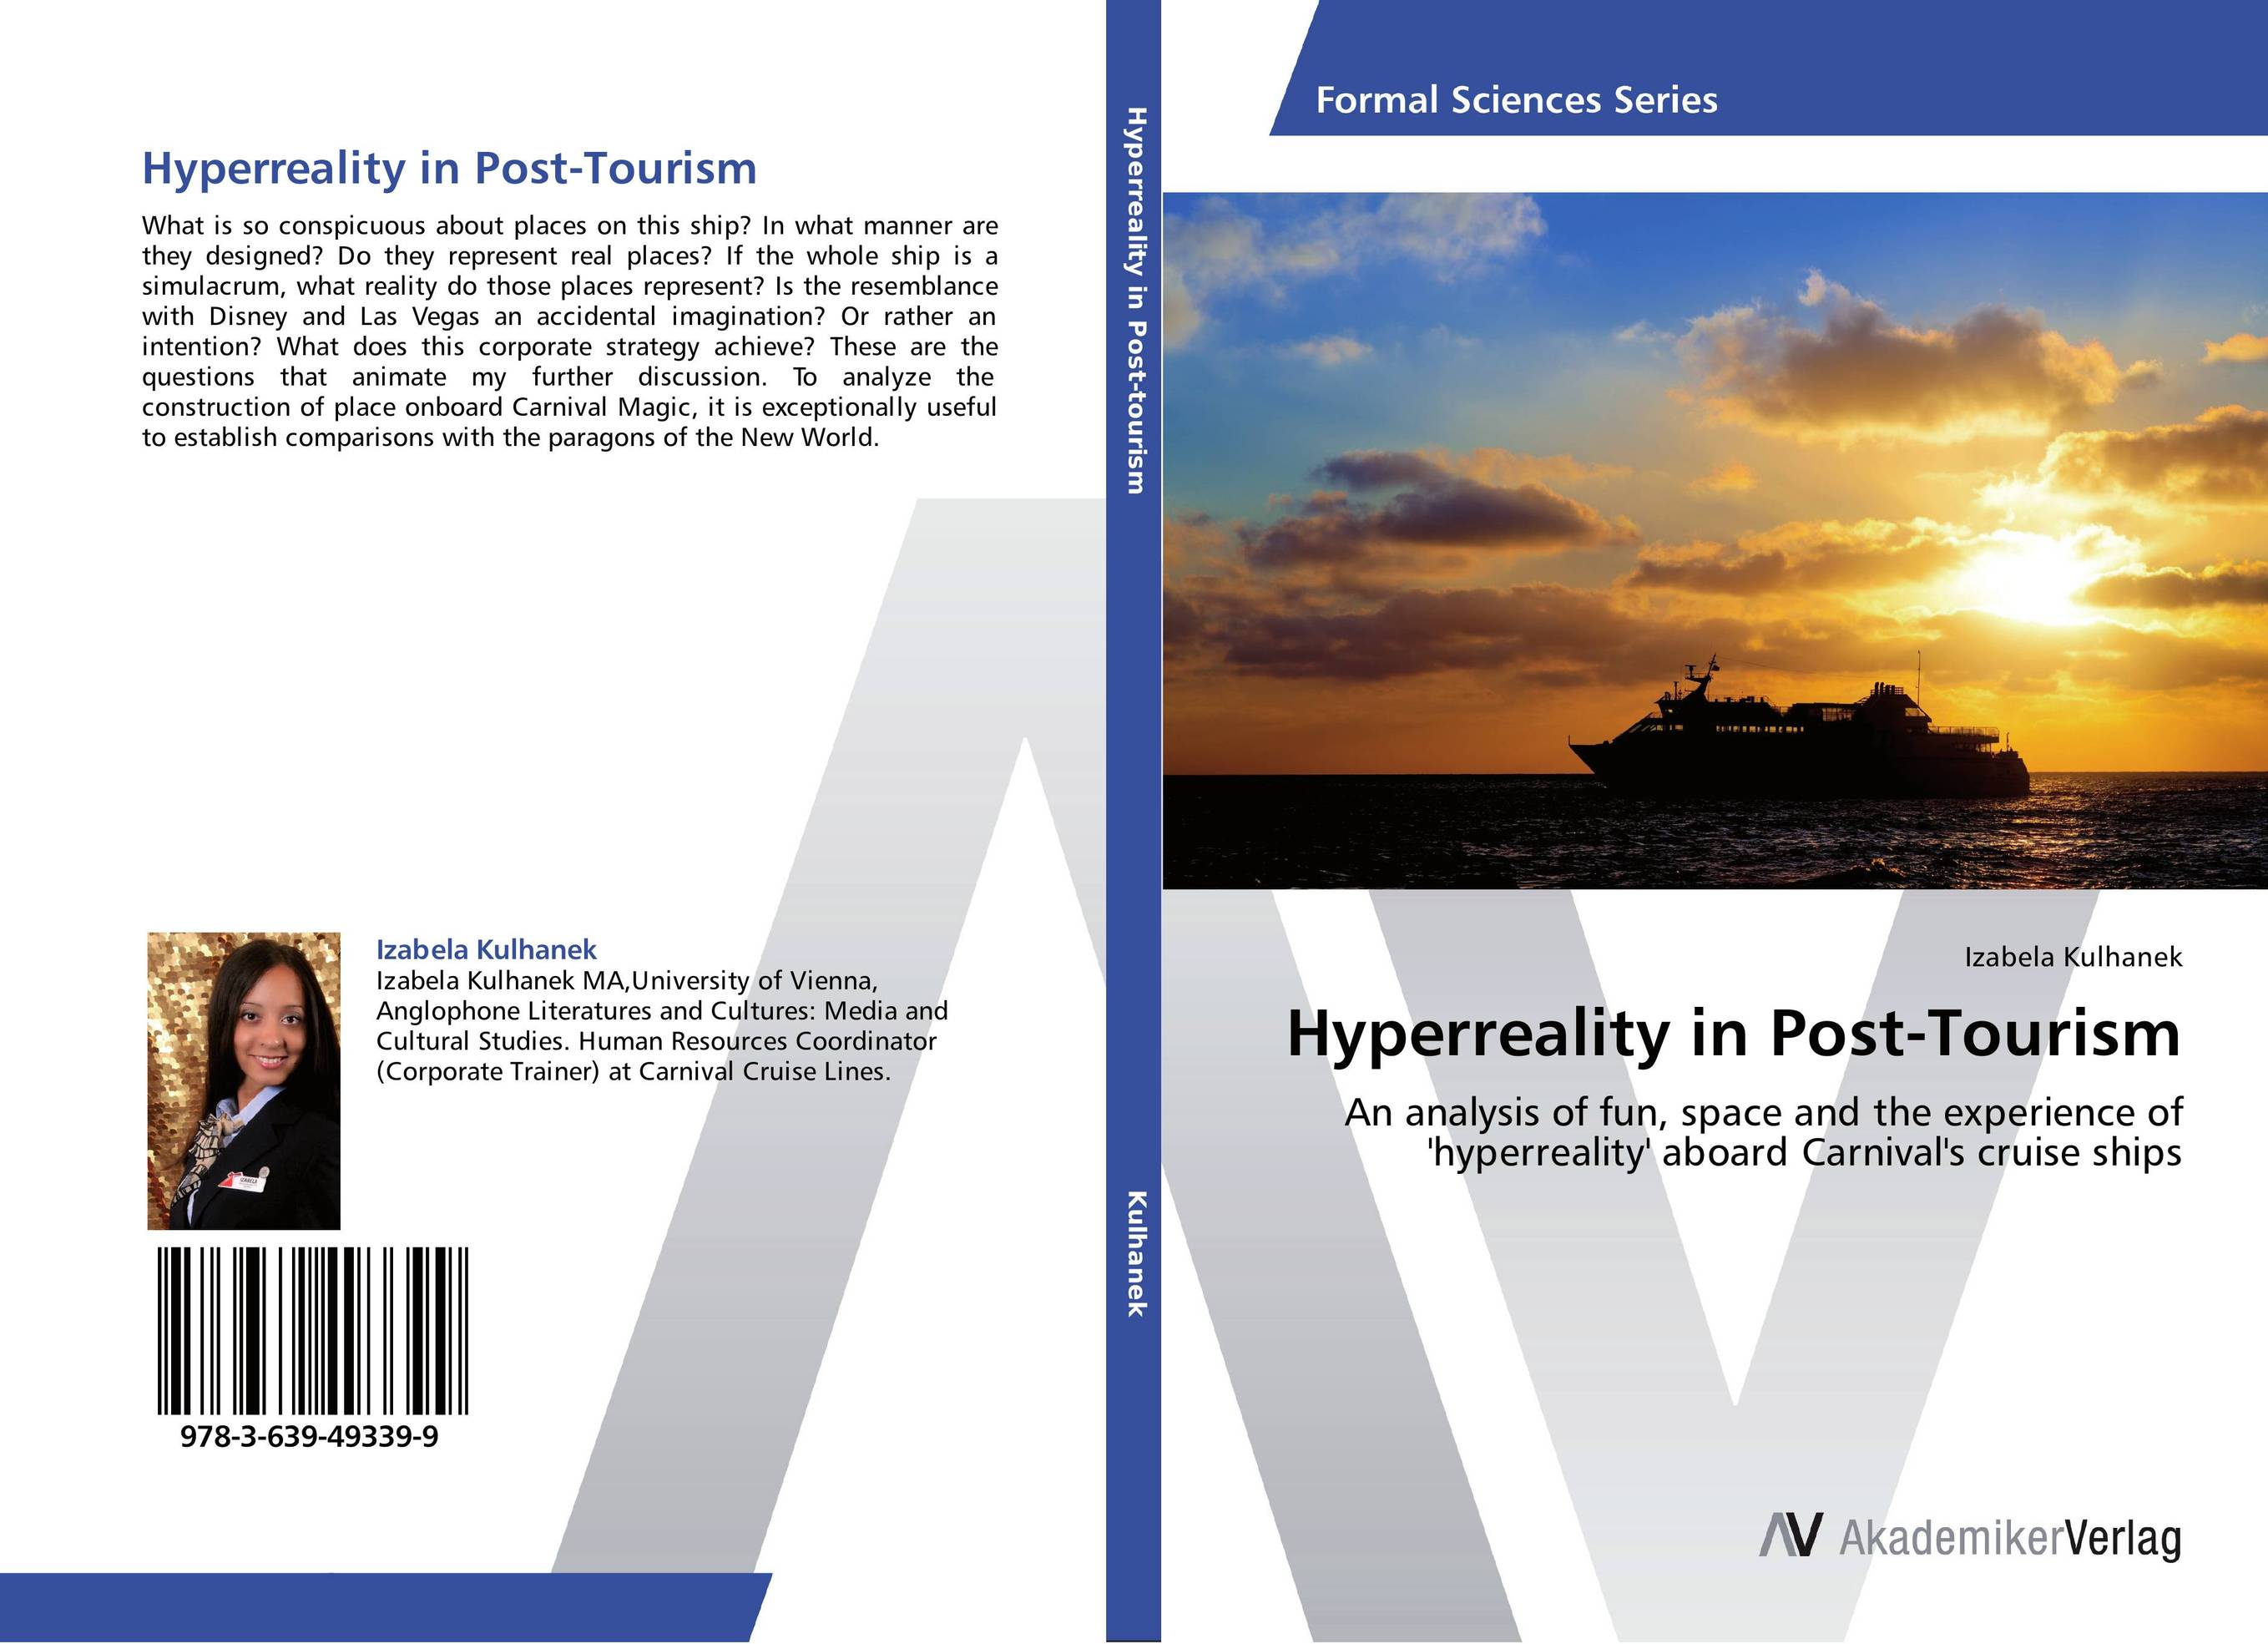 Hyperreality in Post-Tourism